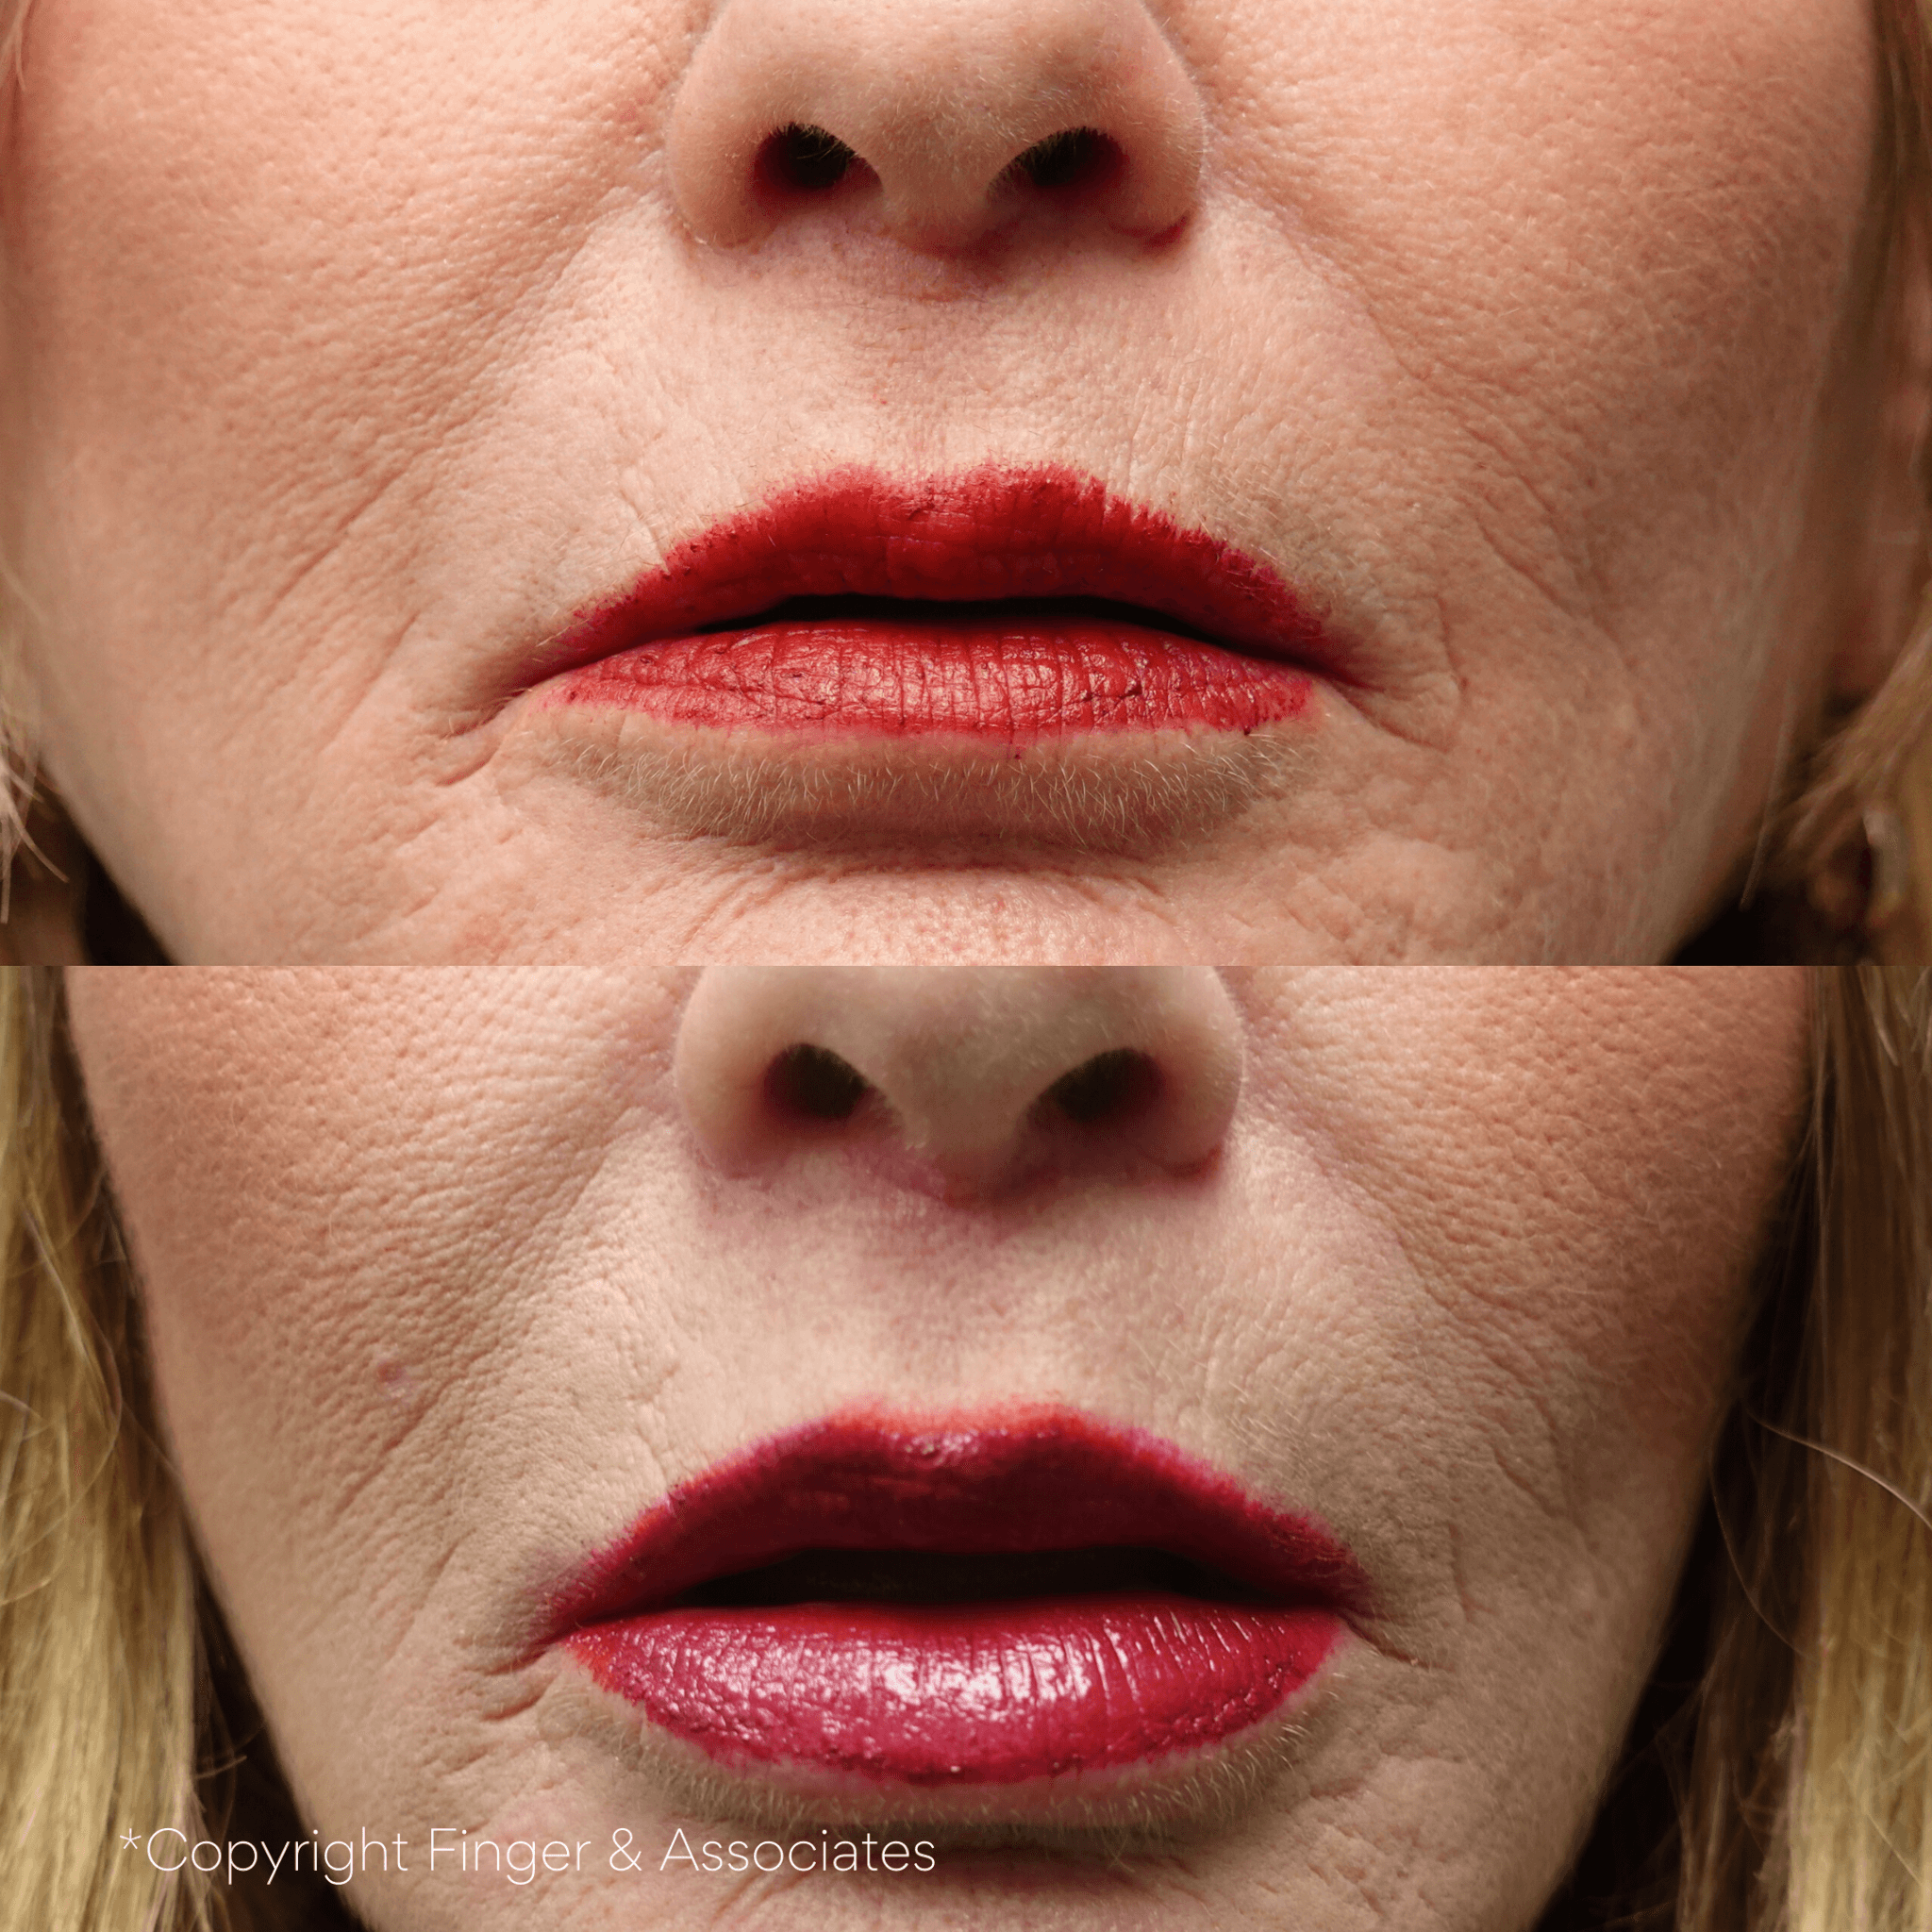 Before and After 4-months Lip Lift and Juvederm Lip Filler by Dr. E. Ronald Finger